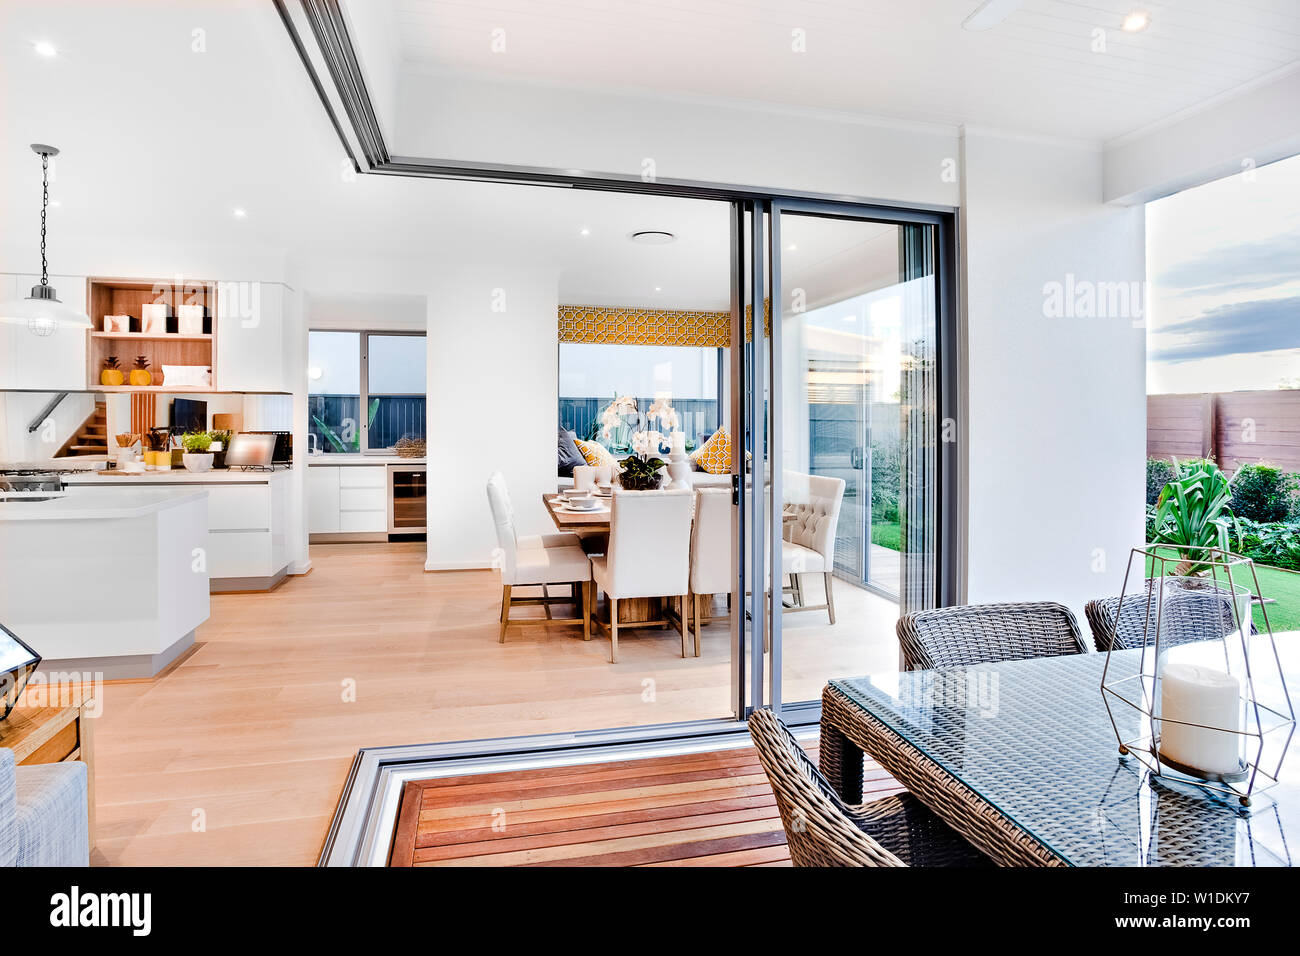 A Stylish Kitchen With A Kitchen Island With A Beautiful Dining Table Next To It With A Glass Sliding Door Partition Leading To The Patio Open Dining Stock Photo Alamy